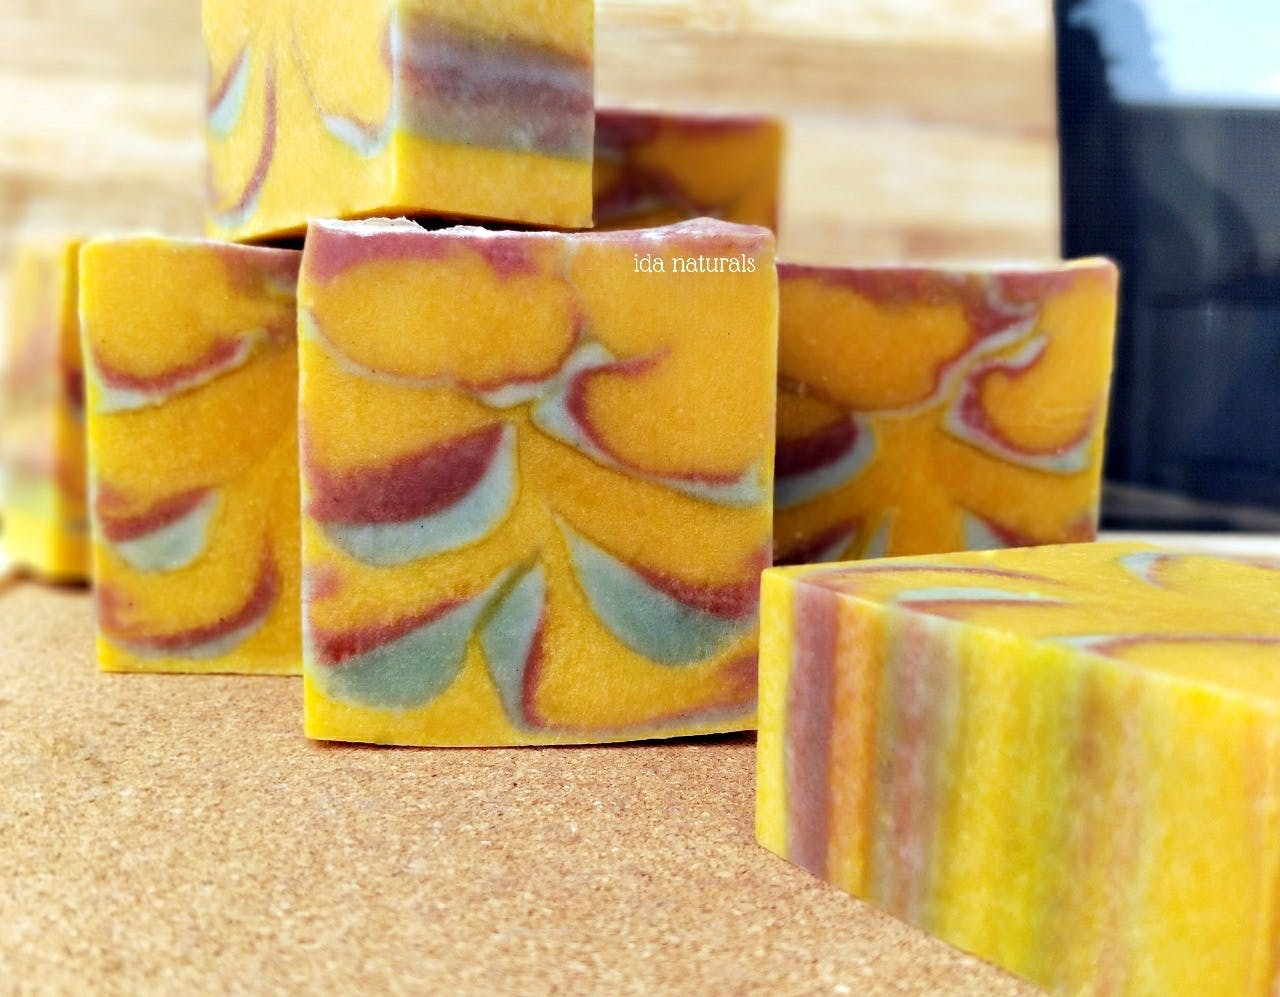 Yellow,Food,Soap,Bar soap,Cuisine,Uirō,Dish,Ingredient,Fruit